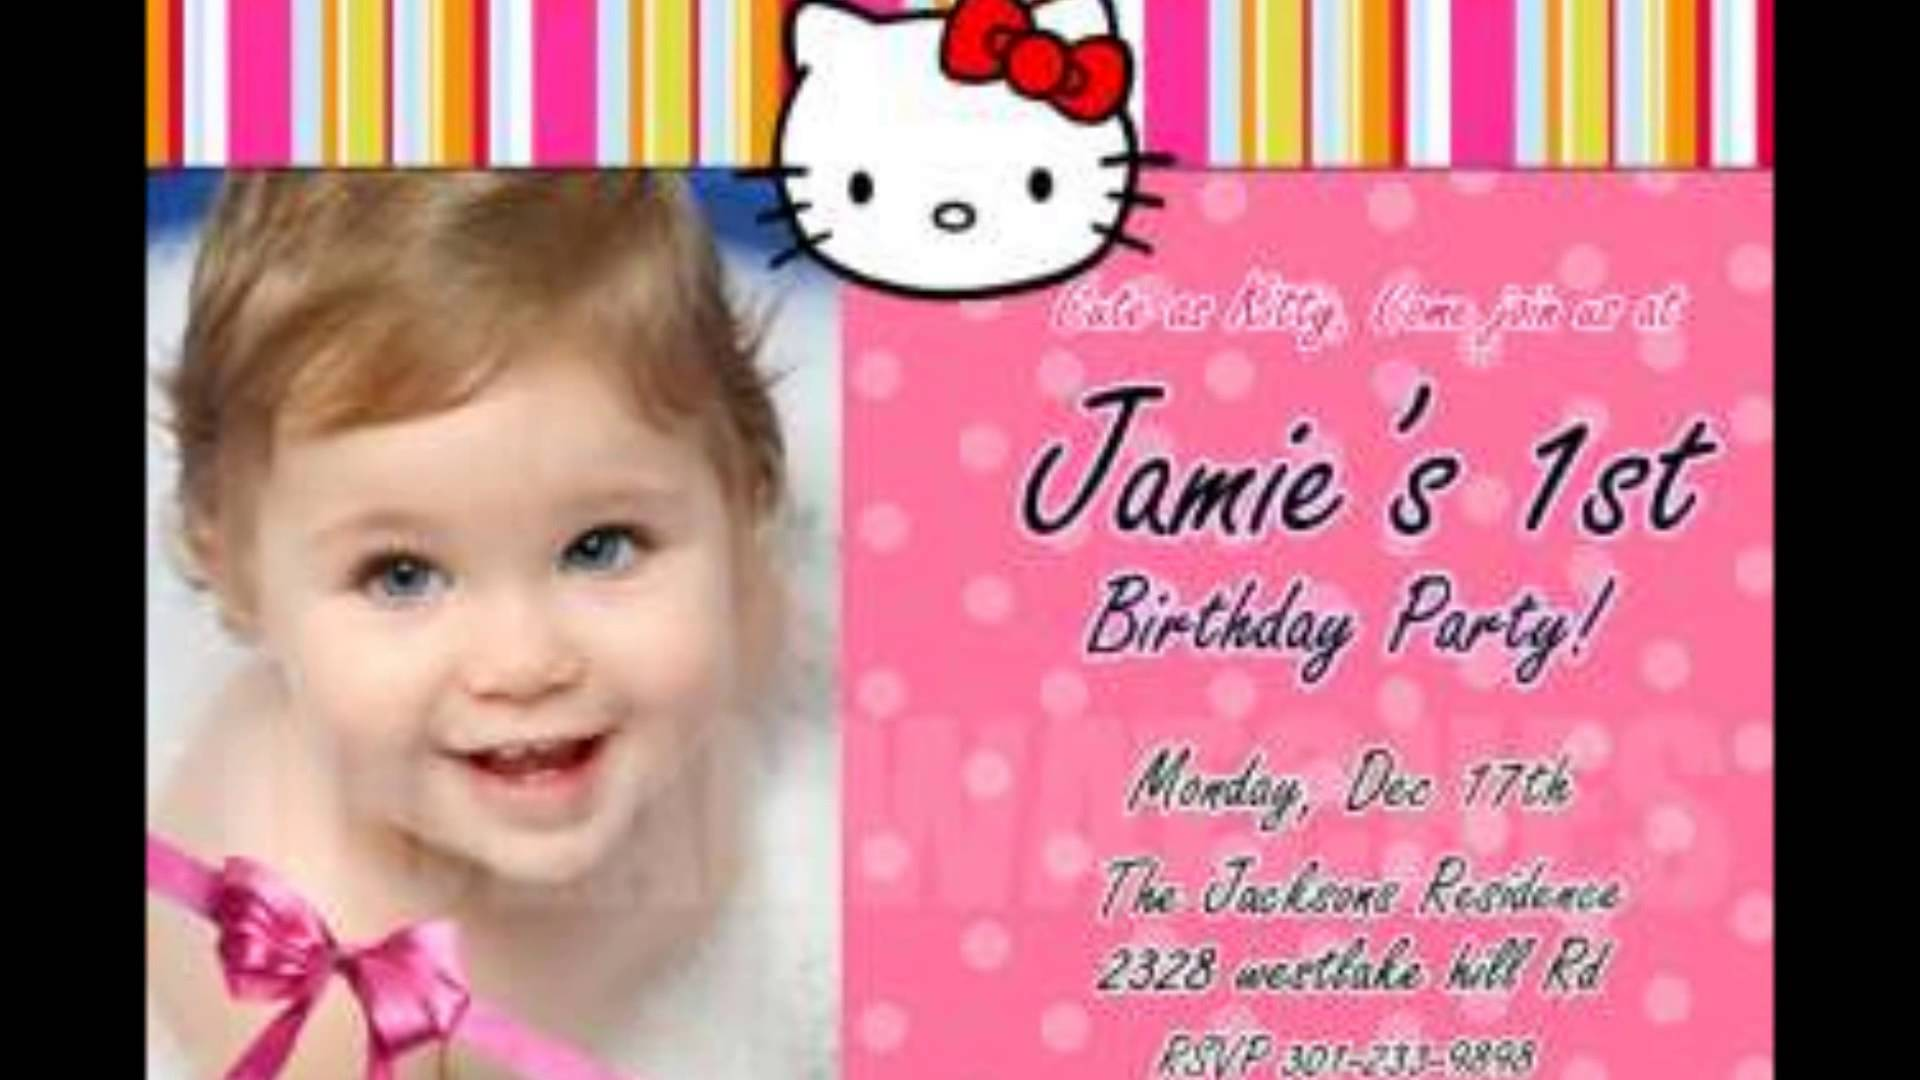 personalized photo birthday party invitations ; maxresdefault